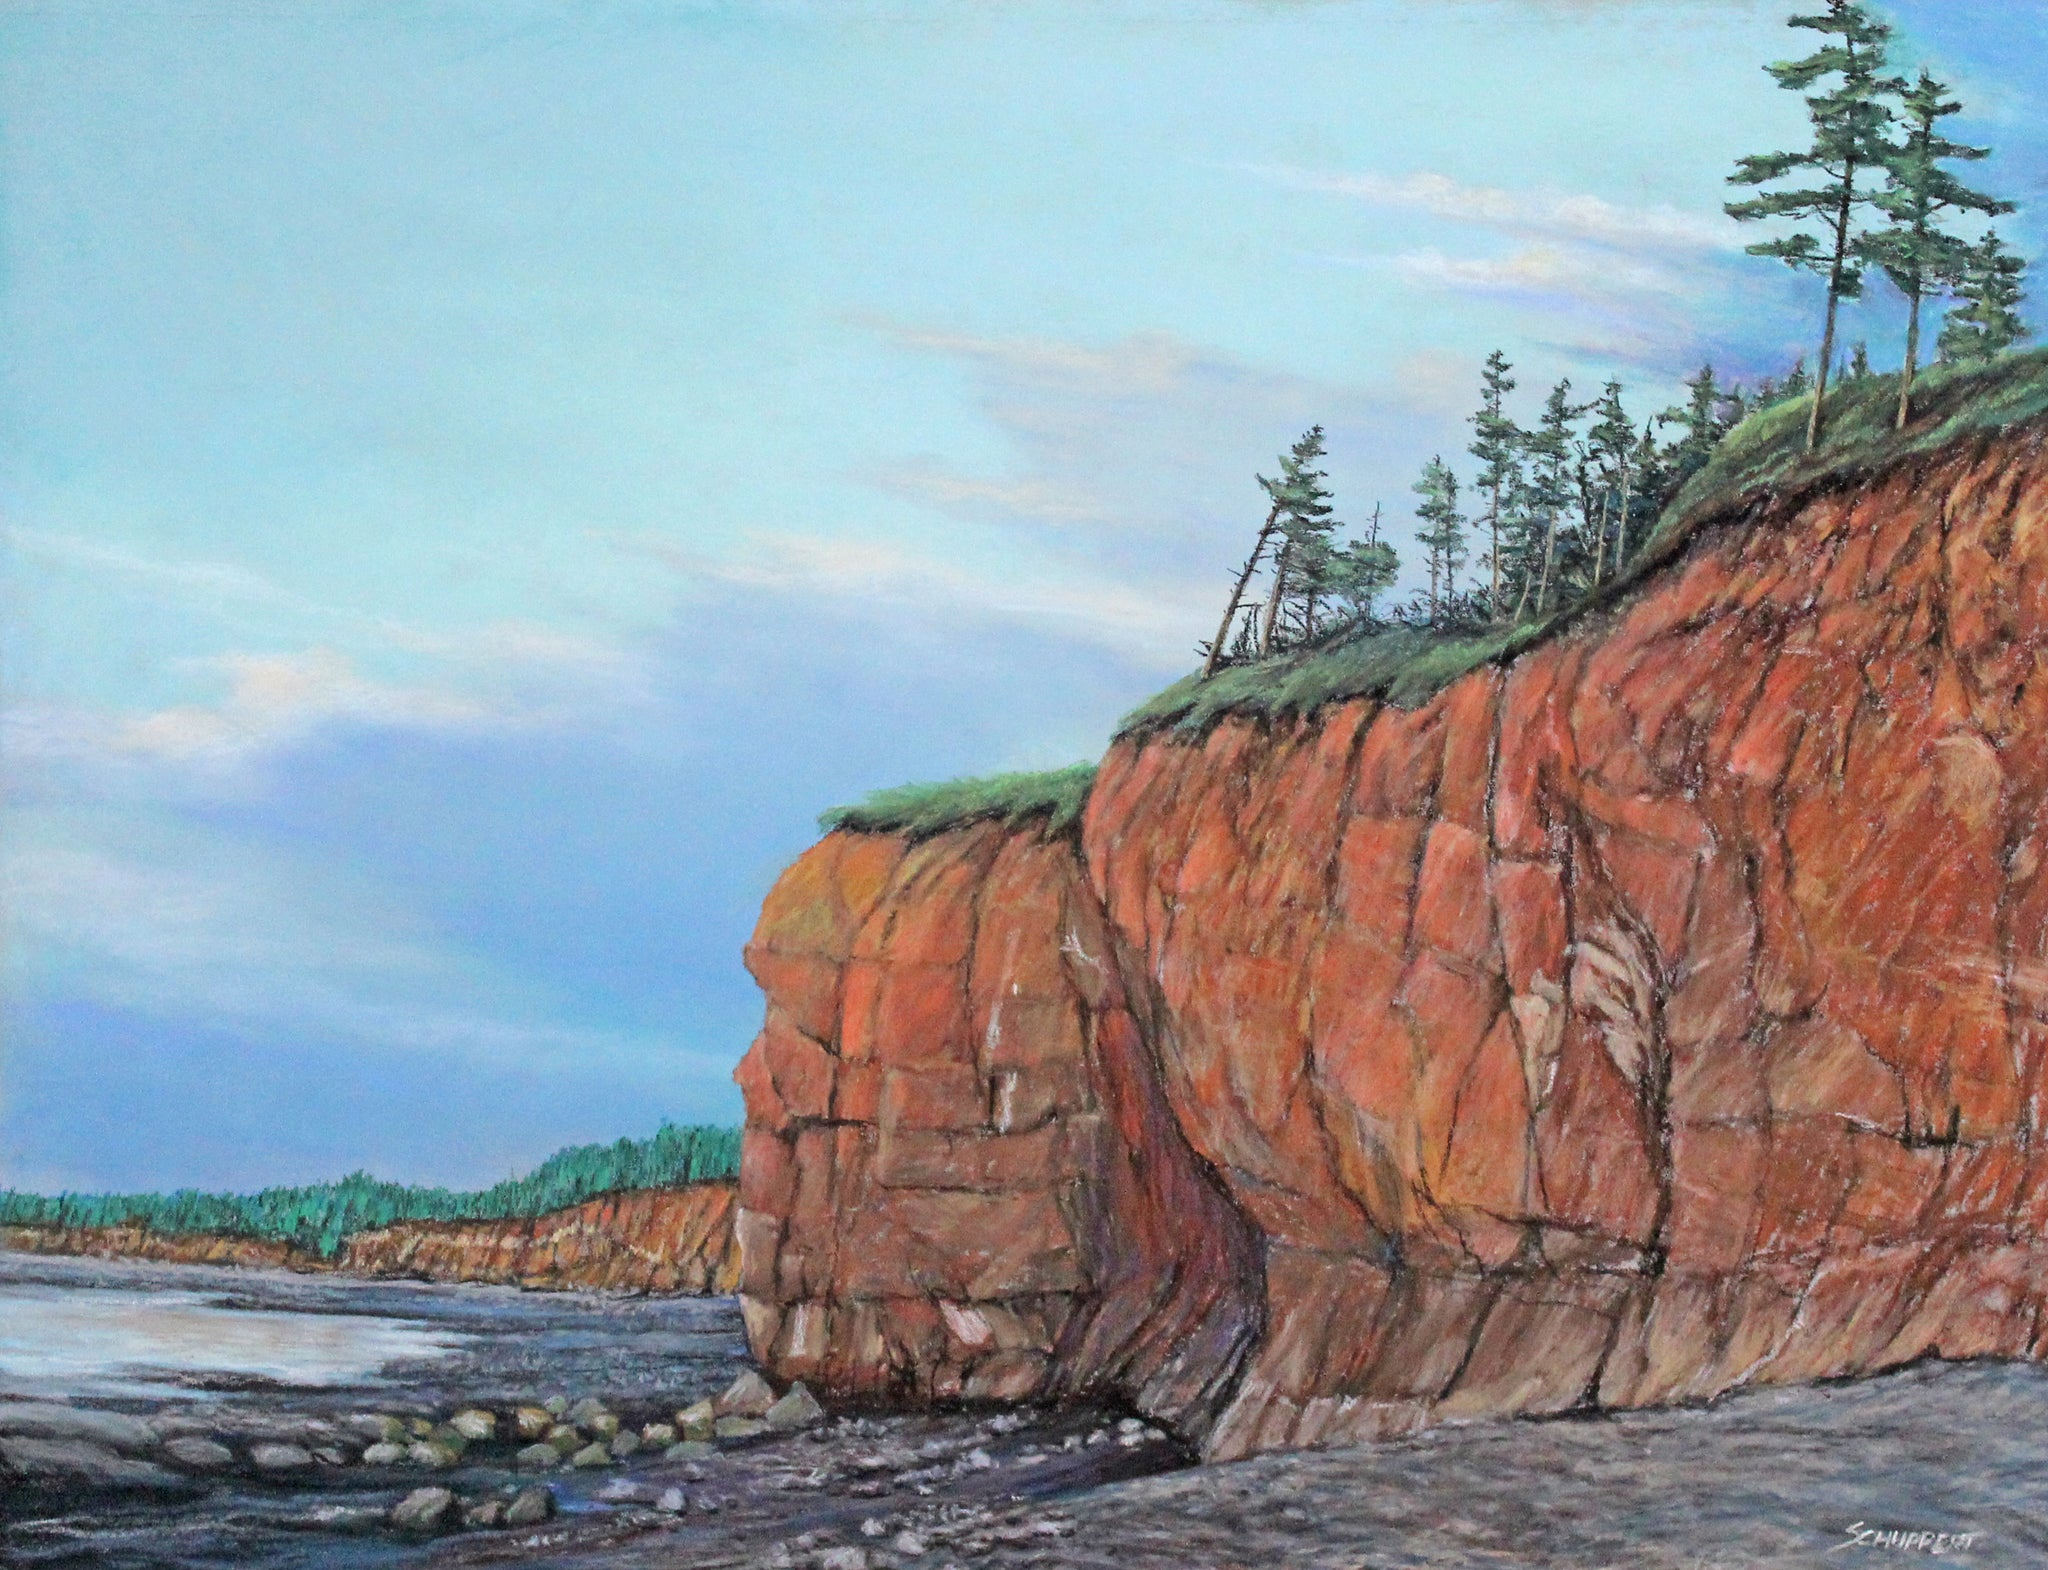 Low Tide at Bay of Fundy: Original Pastel Painting